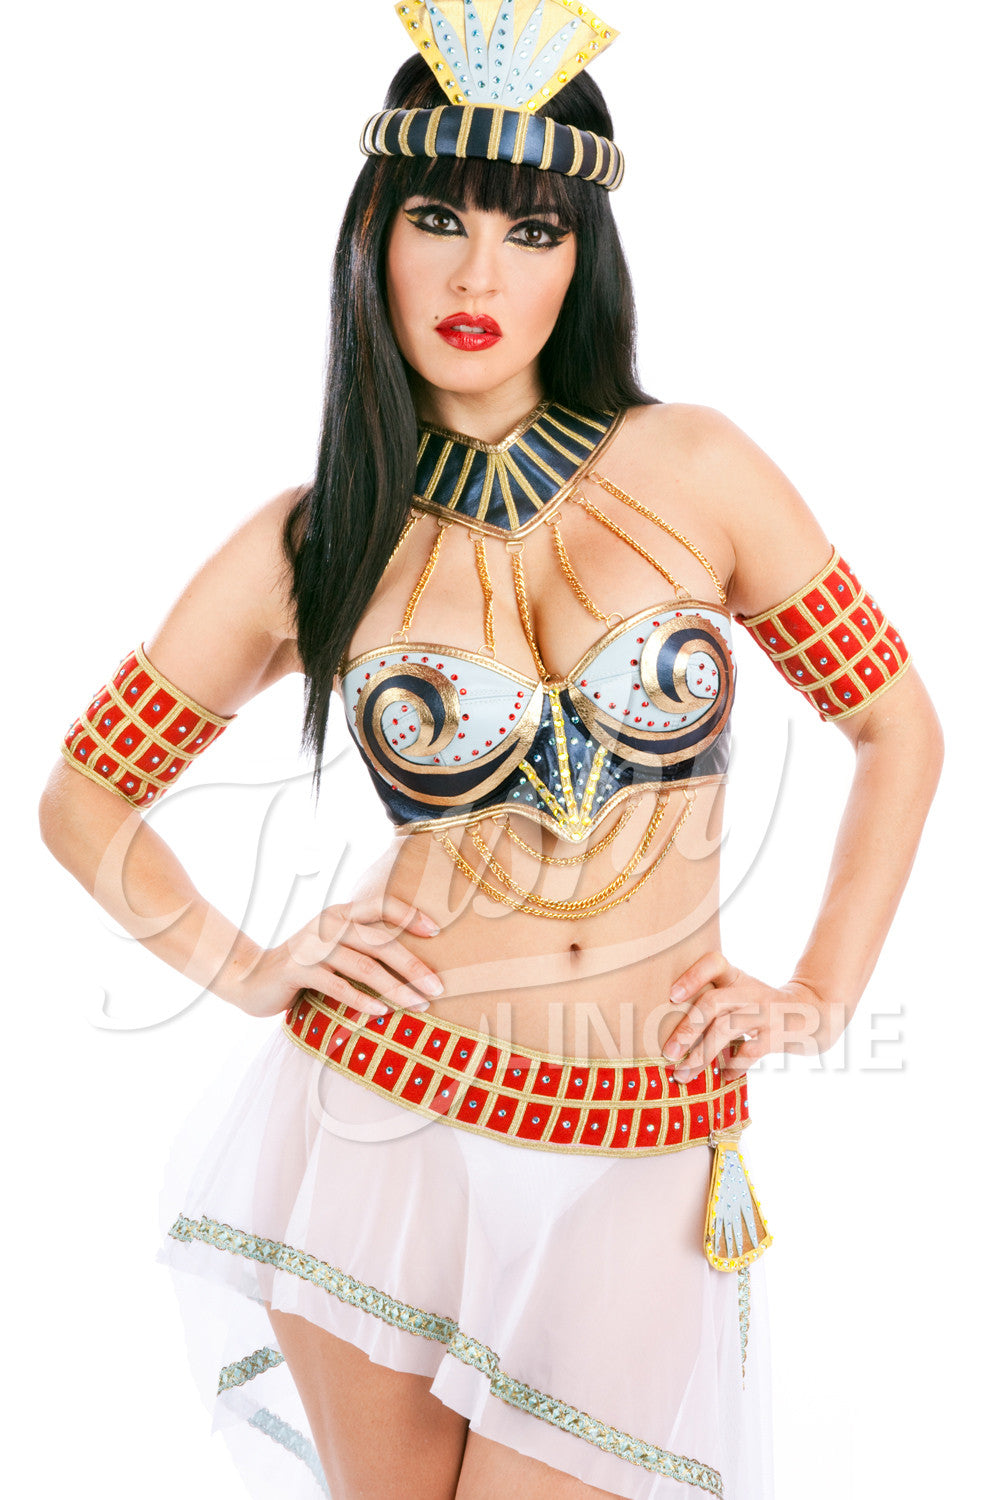 Queen of de Nile Bra with Swirl Cups